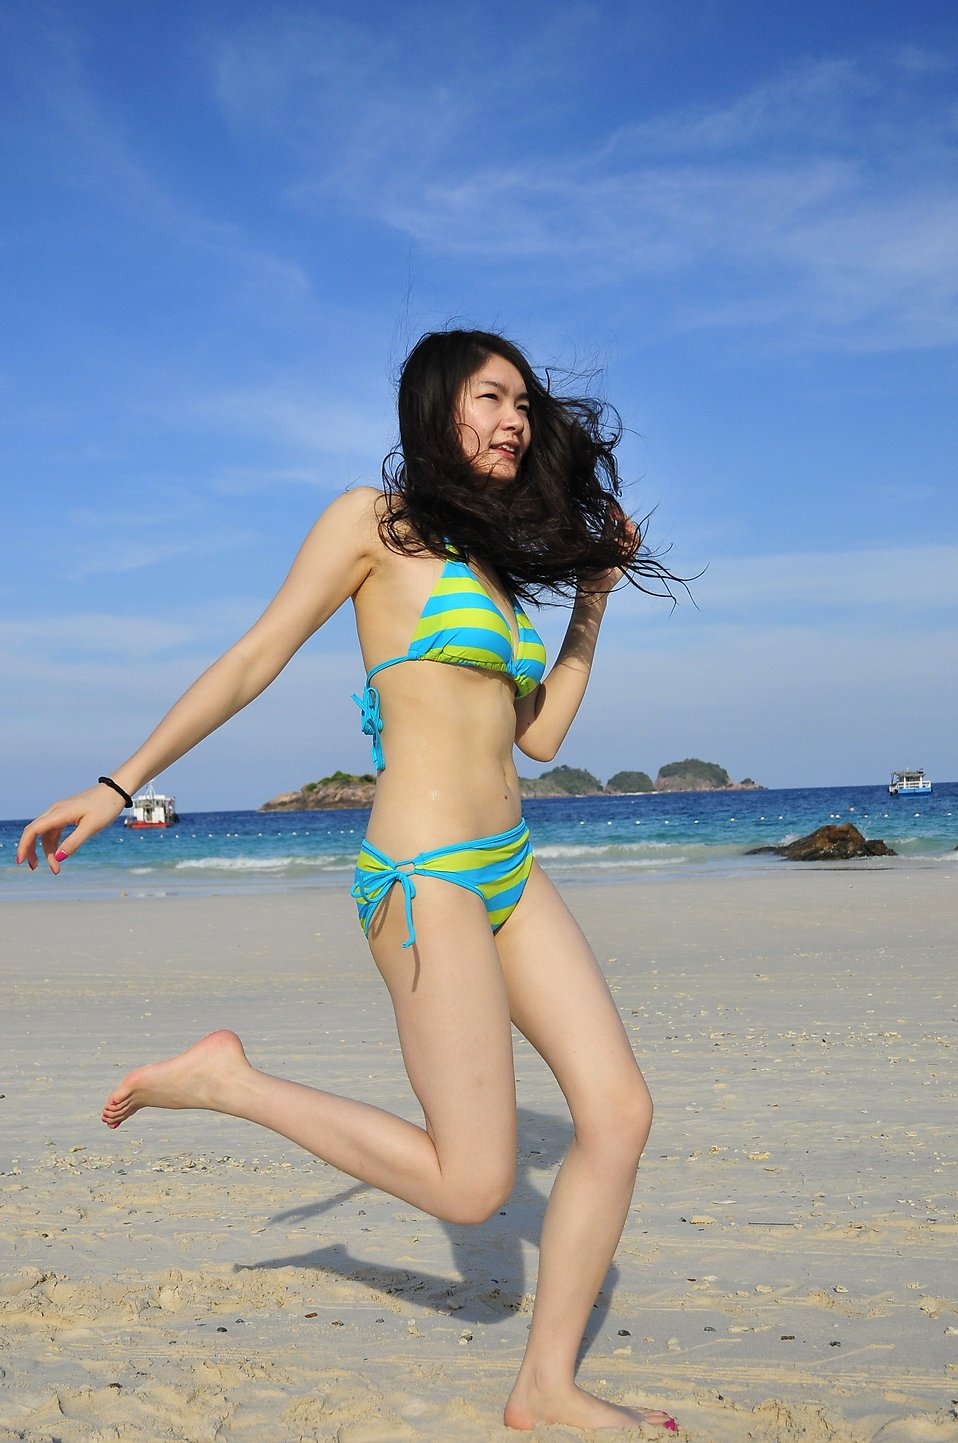 Happens. asian bikini women photo free can read